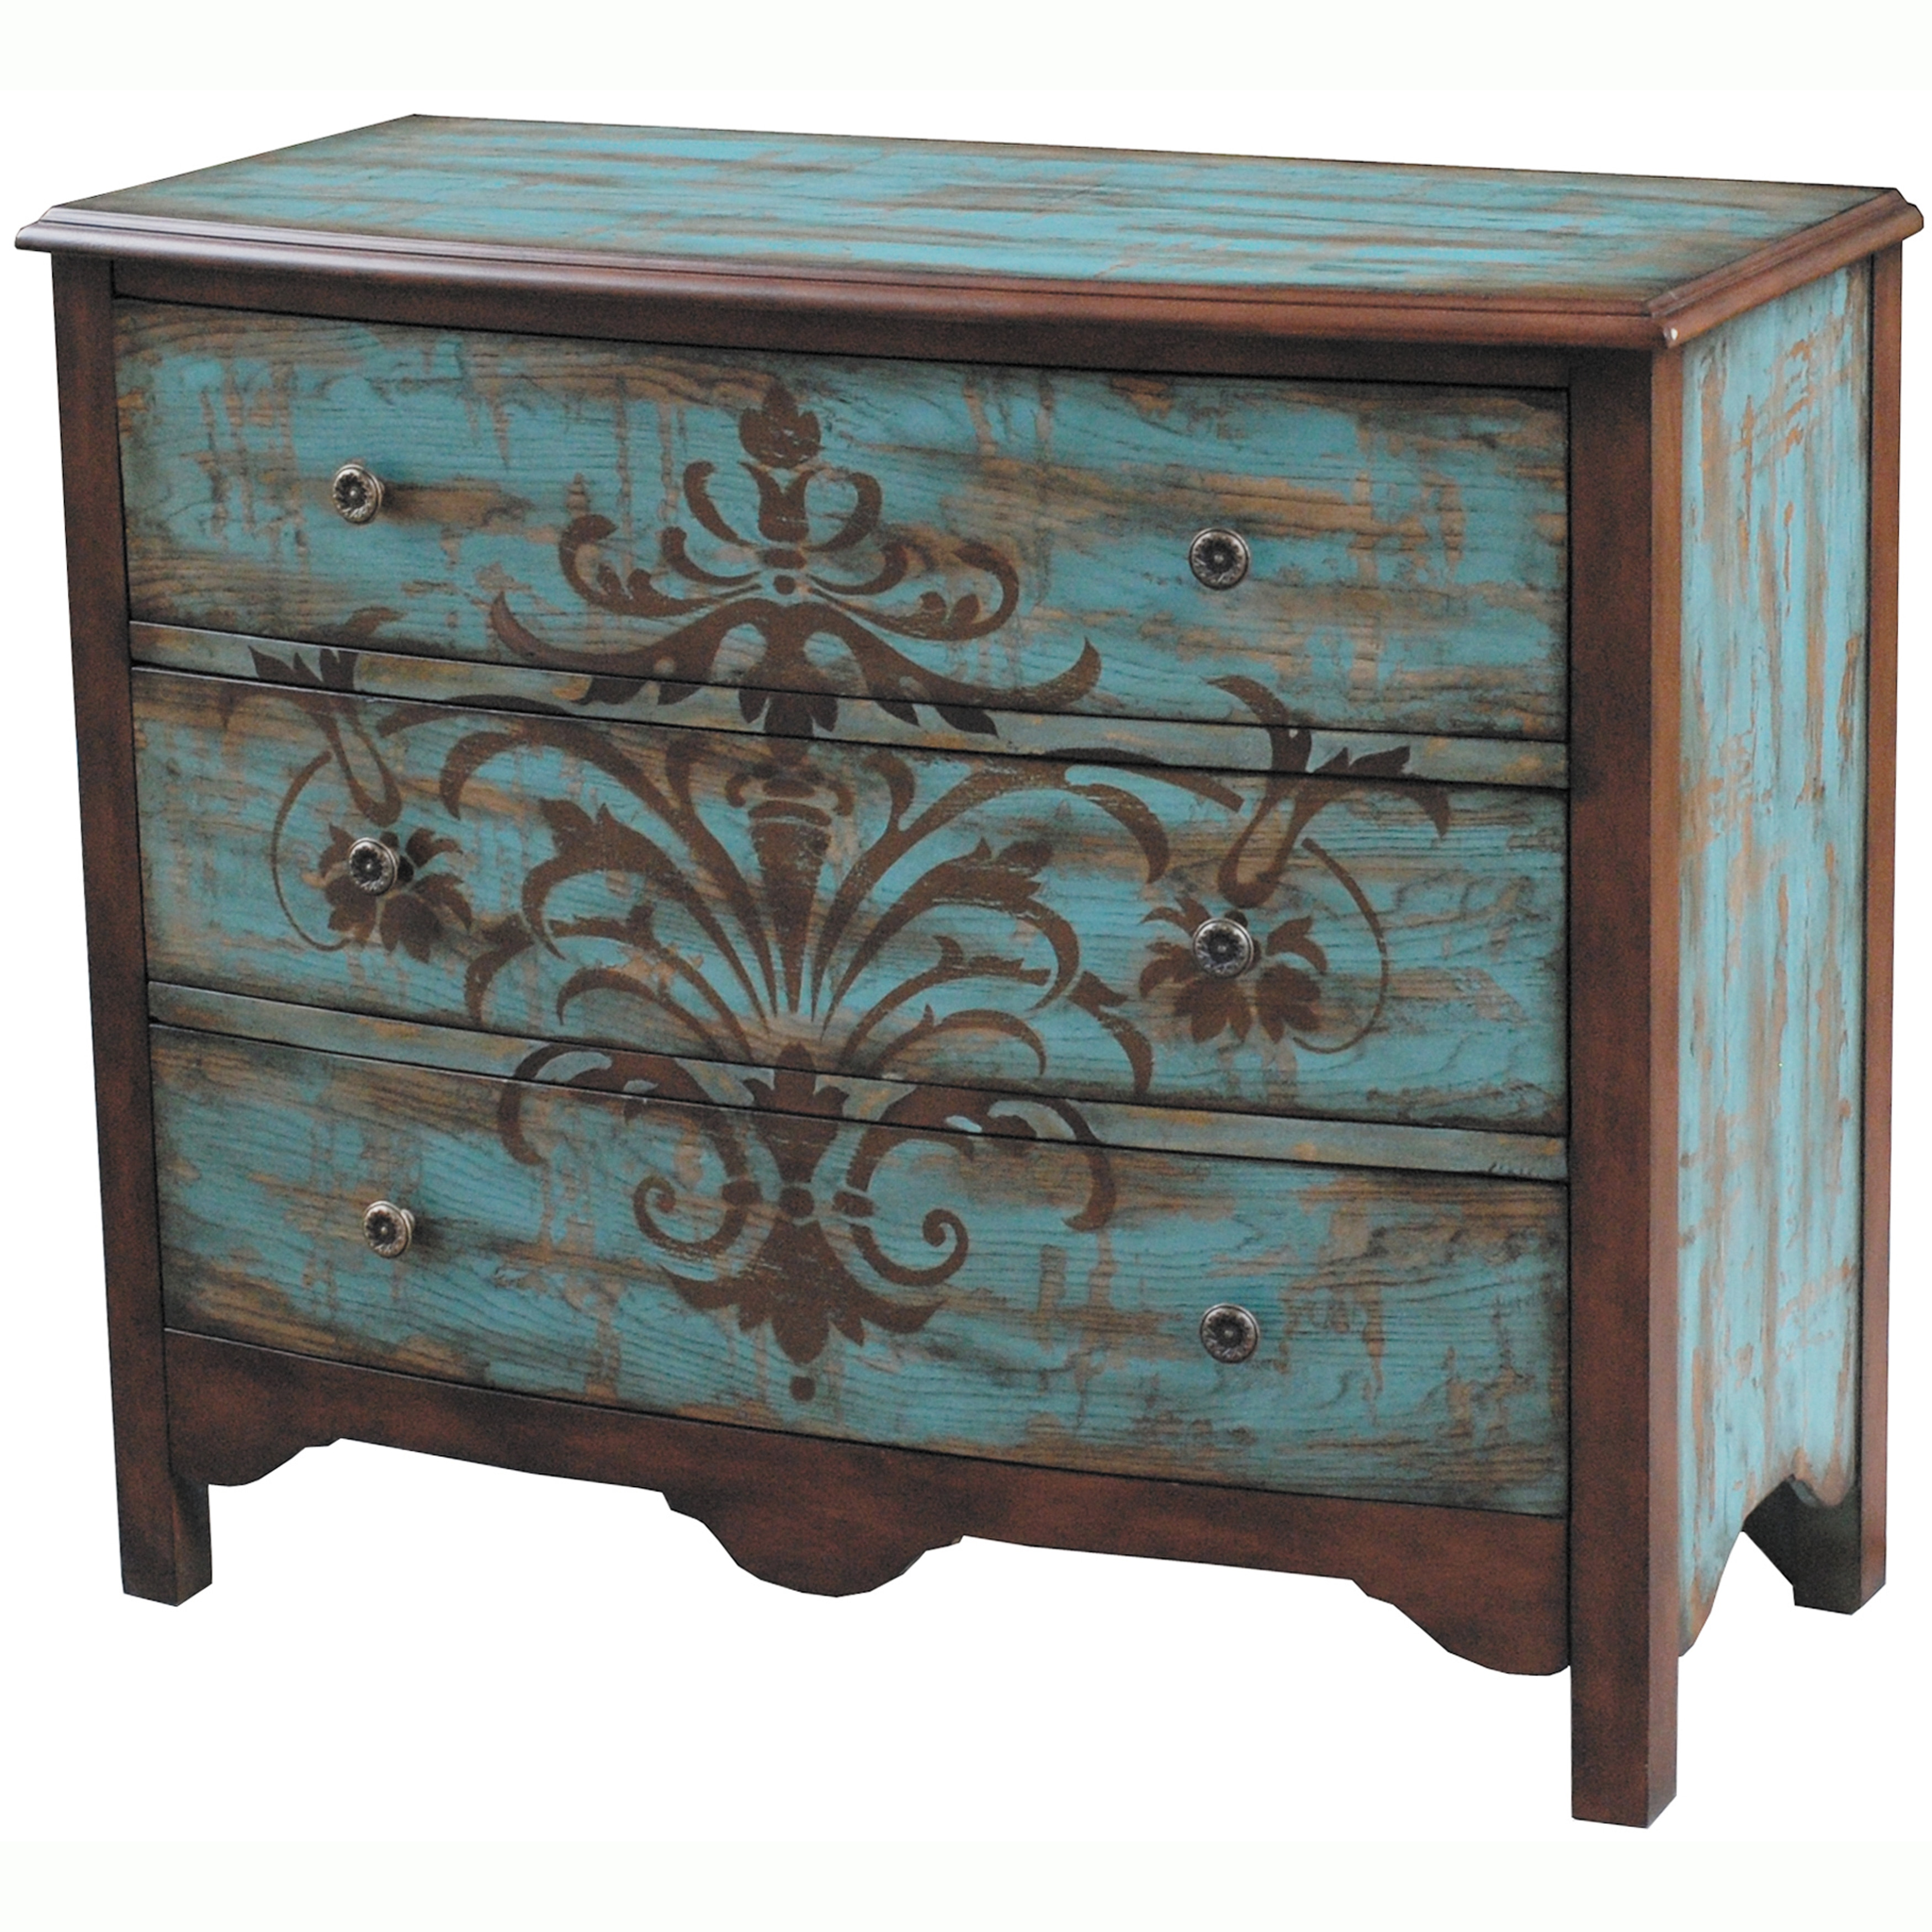 Hand Painted Distressed Coffee Table: Hand-painted Distressed Walnut And Blue Finish Accent